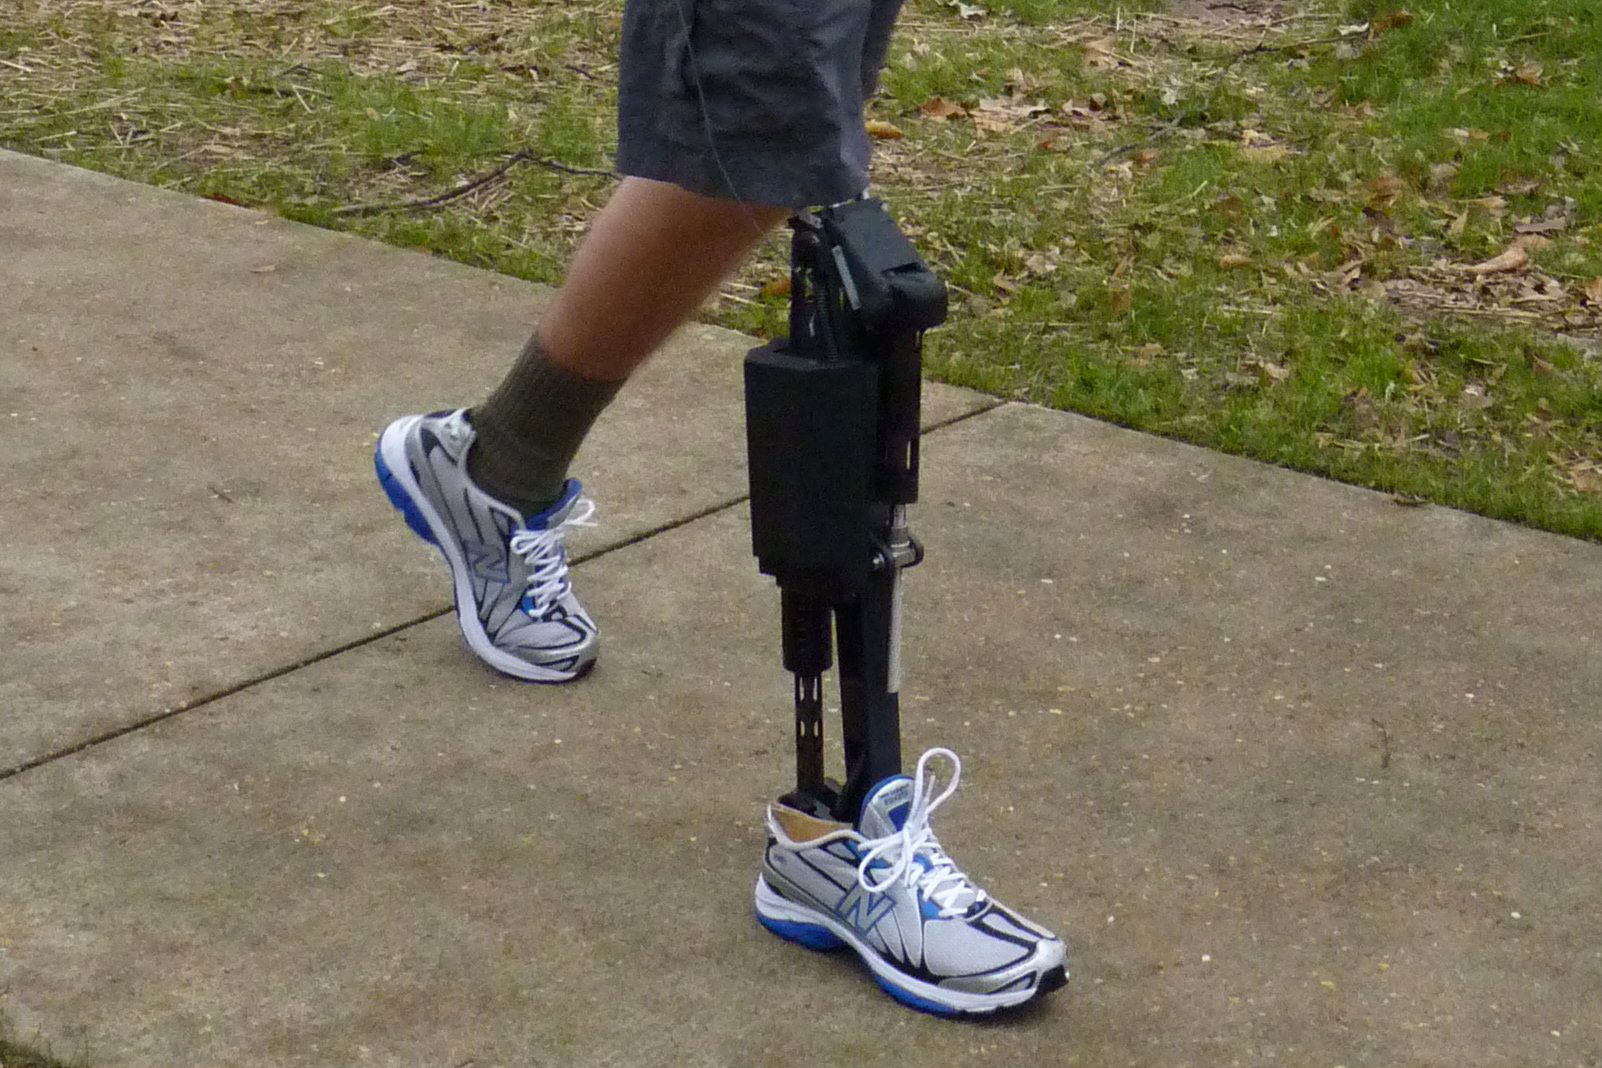 Image of robotic prosthetic from the knee down.